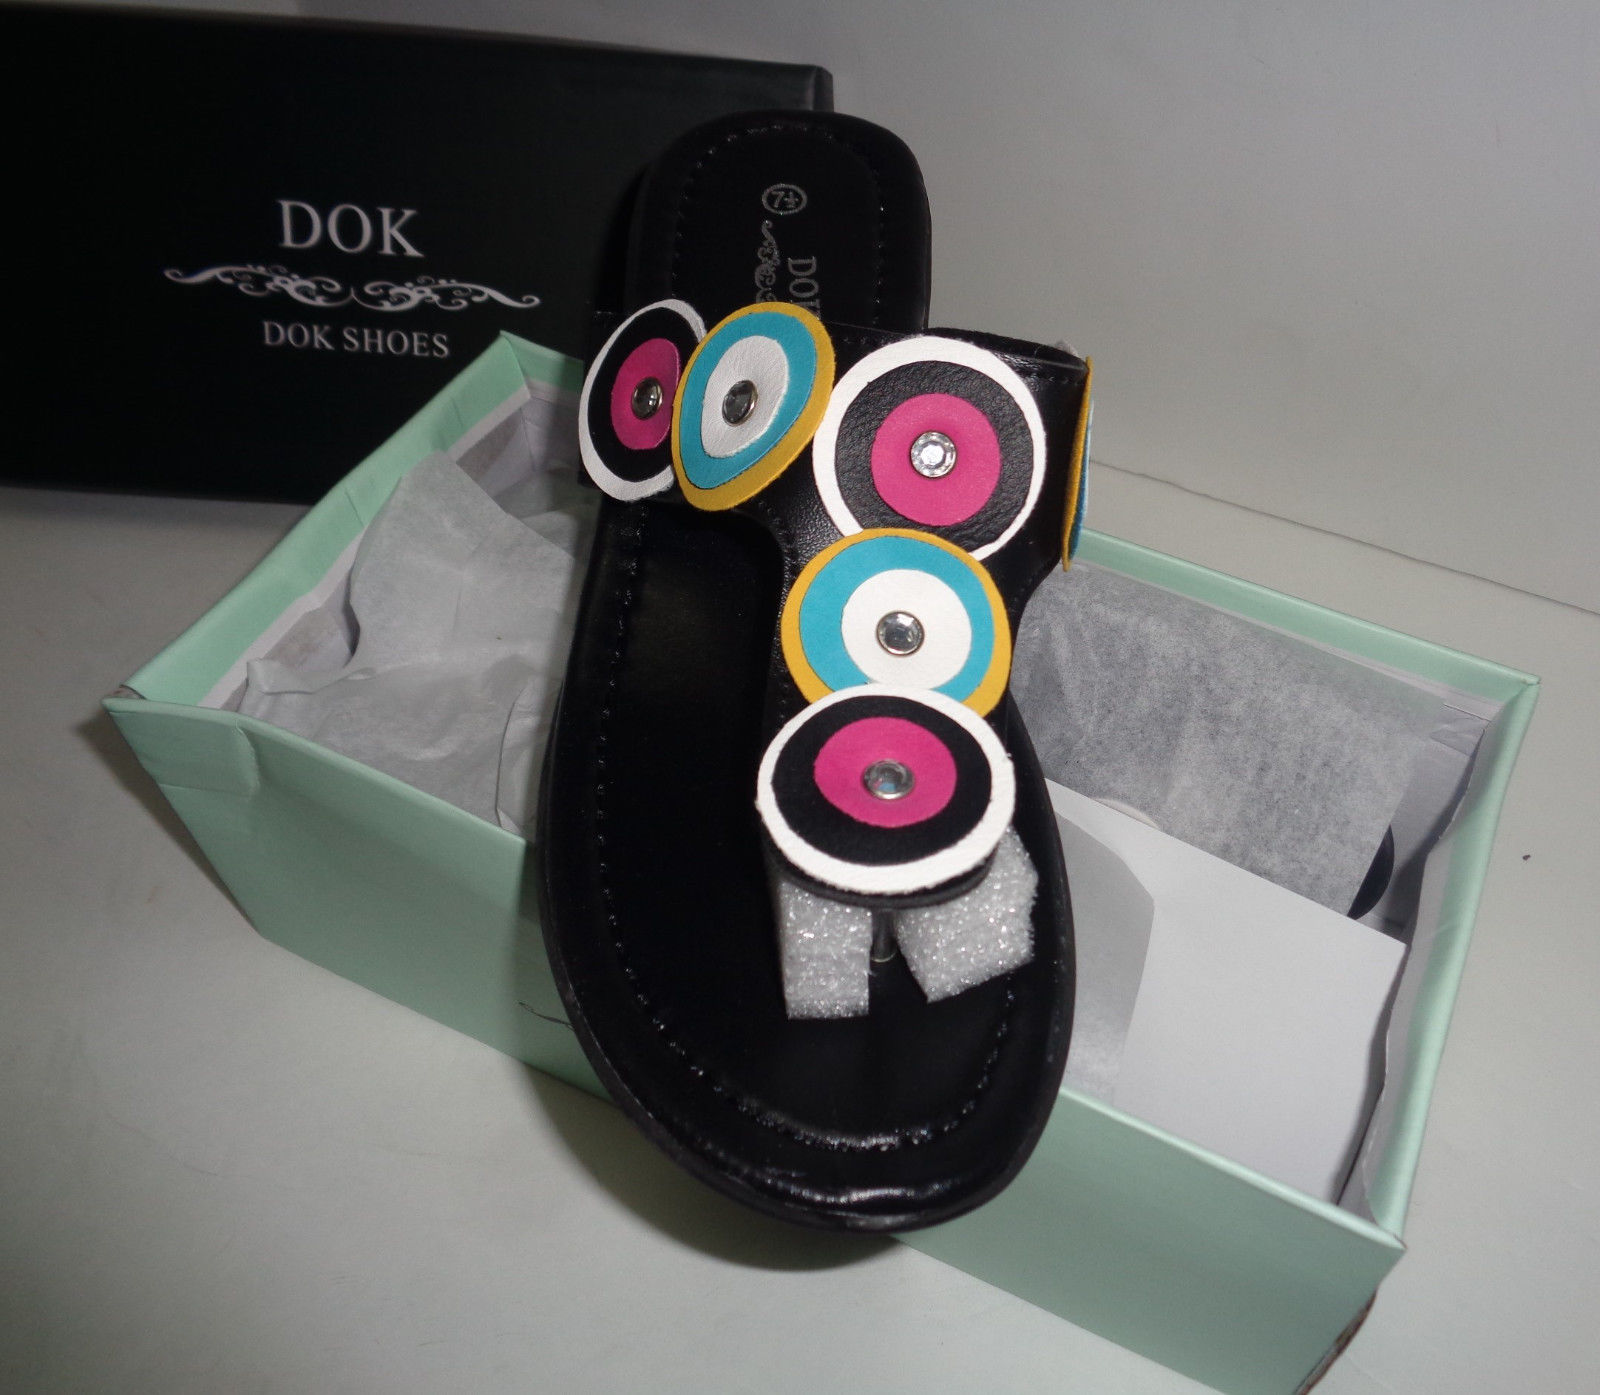 Women's Black Mule Sandals MultiColor Accent DOK NIB Sz 6, 7.5 Available